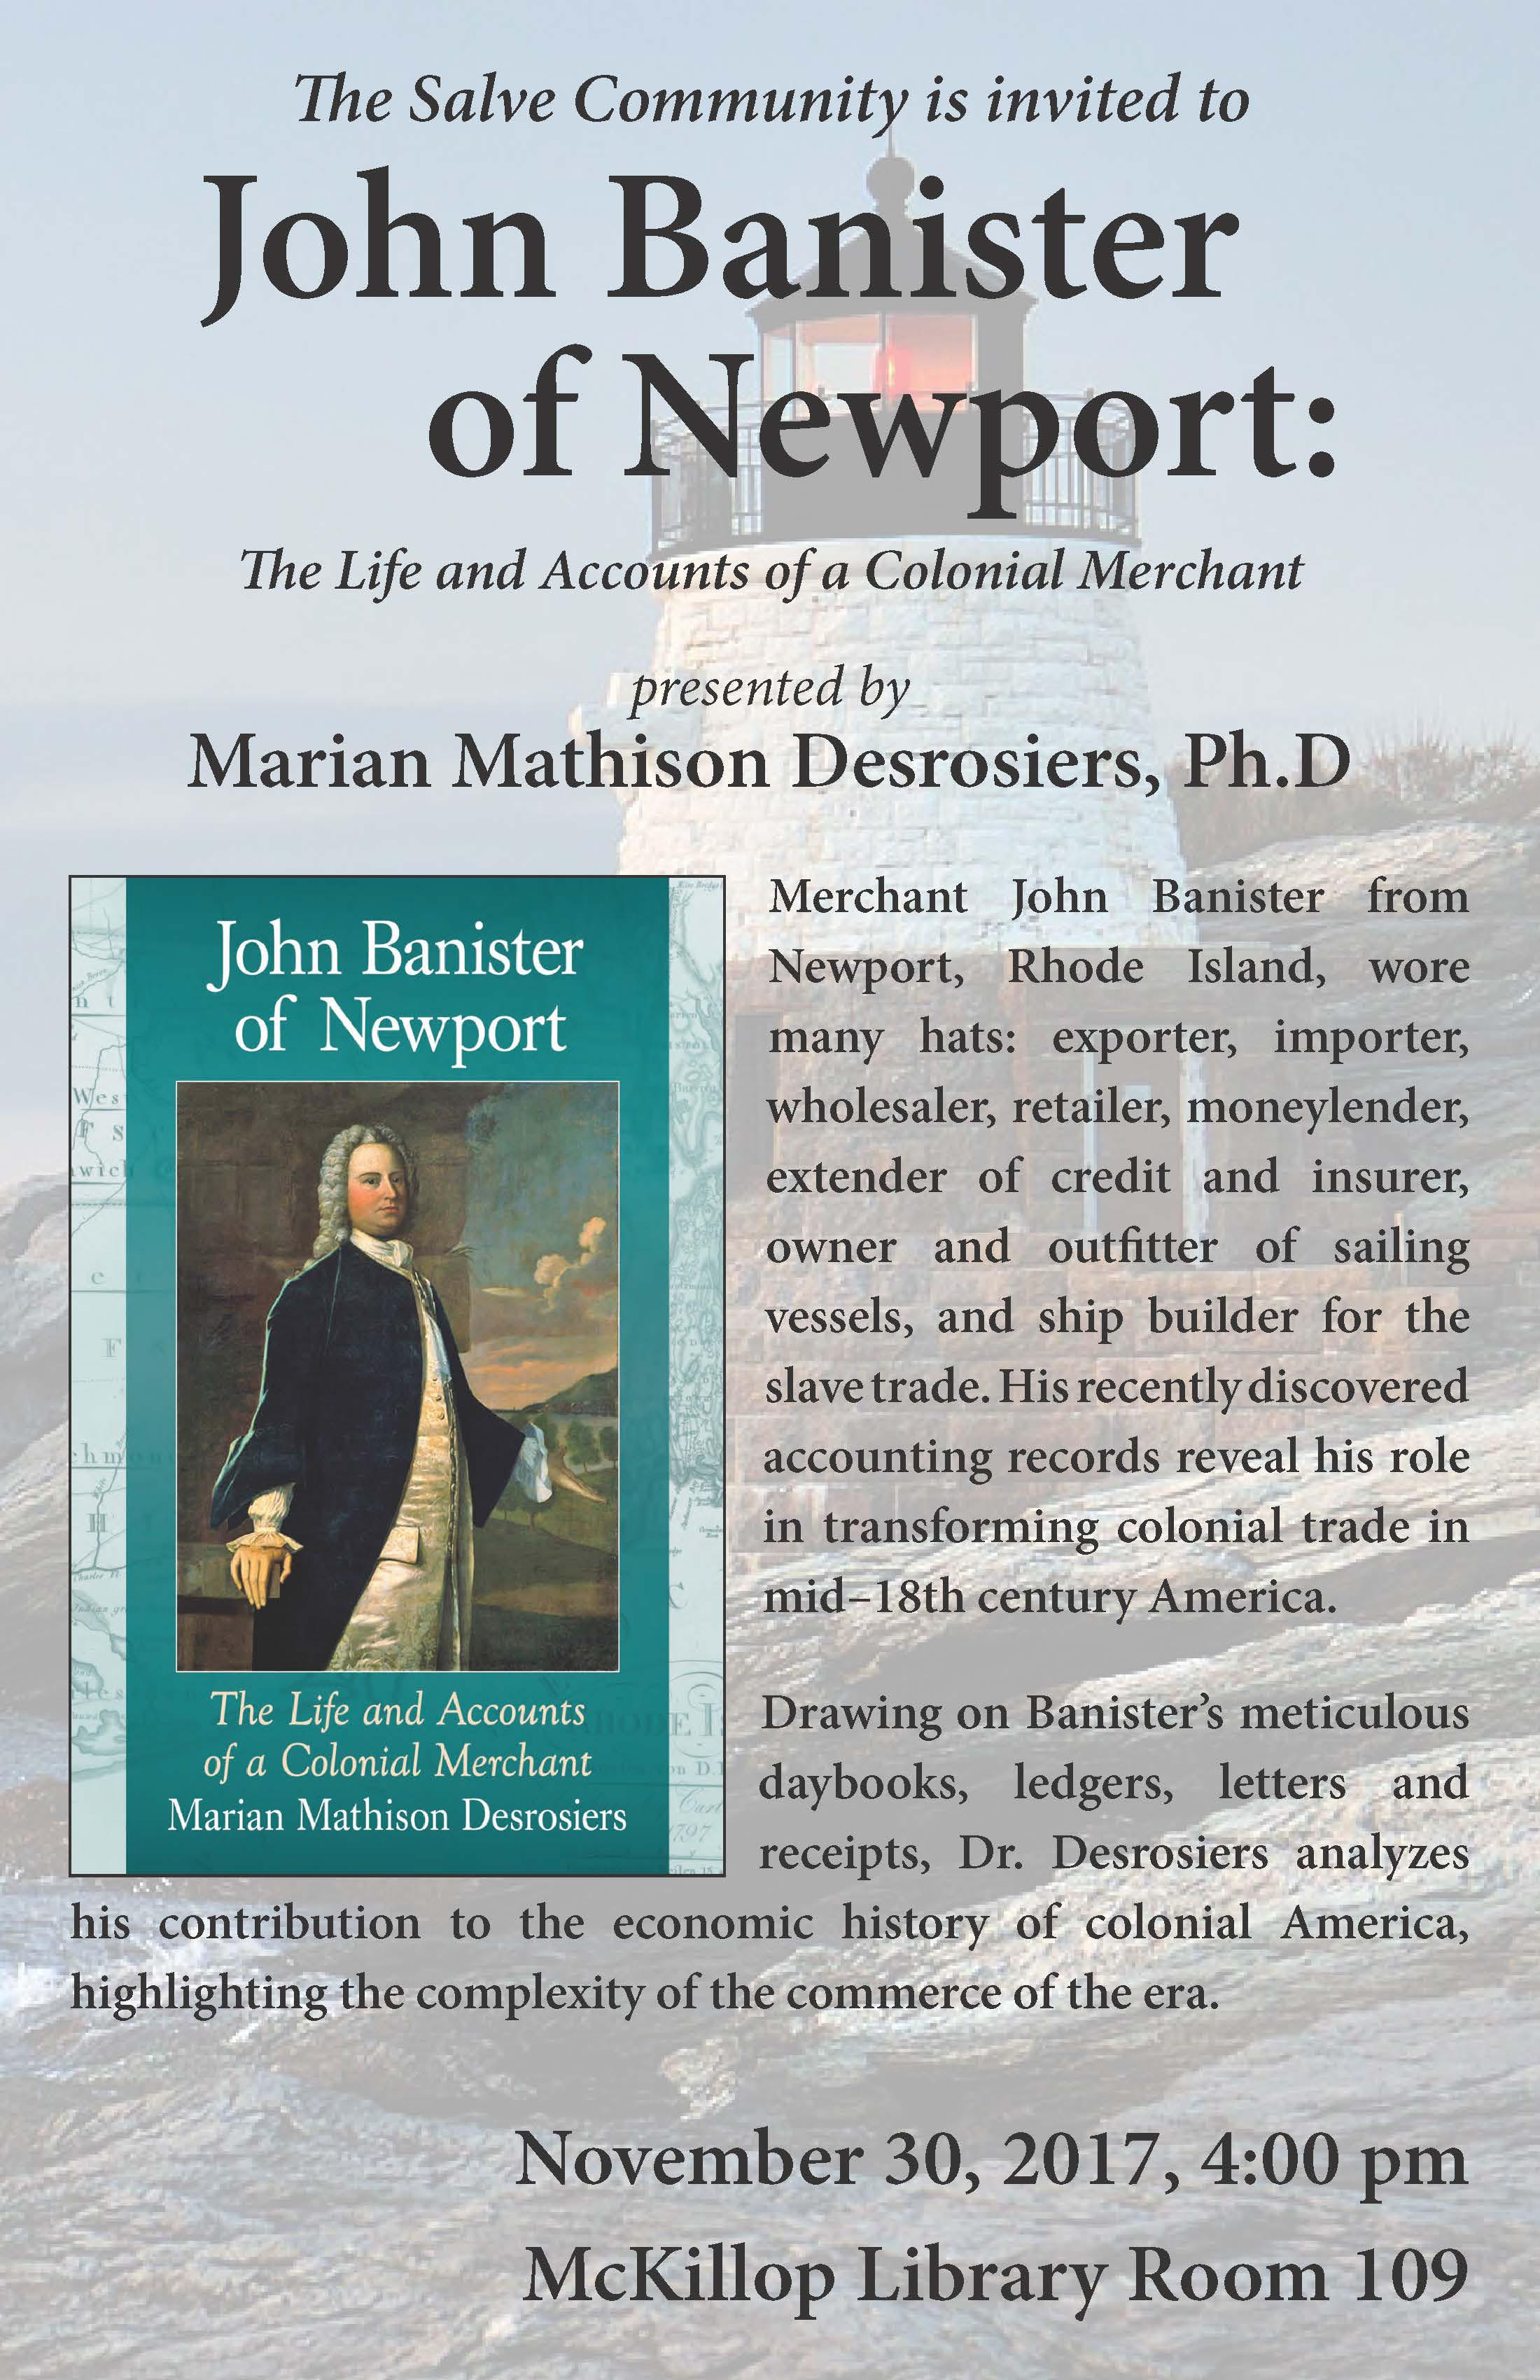 Faculty Lecture Series: John Banister of Newport: The Life and Accounts of a Colonial Merchant, presented by Marian Mathison Desrosiers, Ph.D